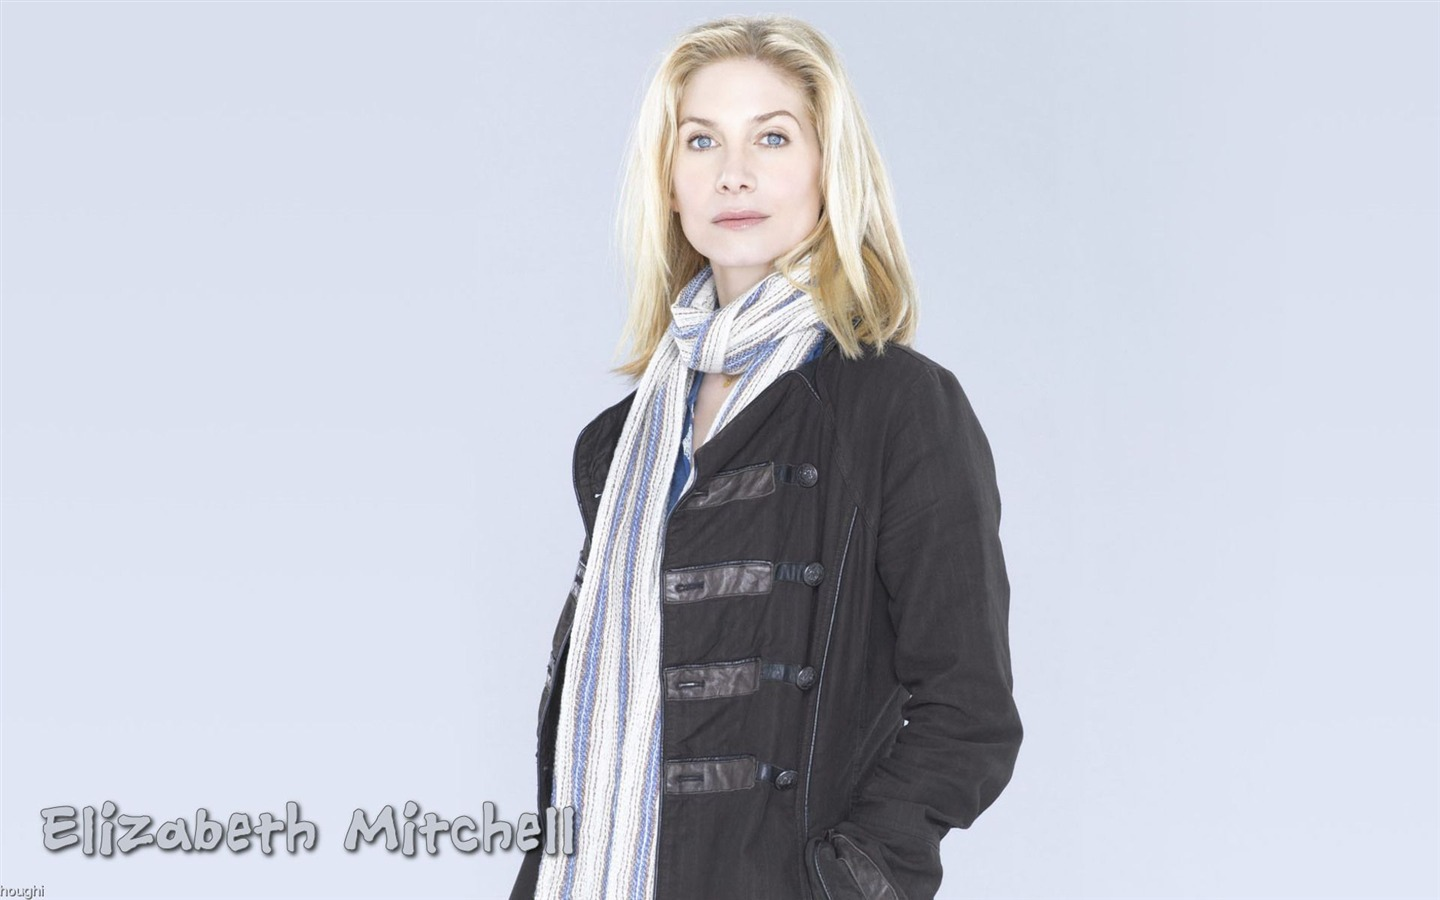 Elizabeth Mitchell #012 - 1440x900 Wallpapers Pictures Photos Images